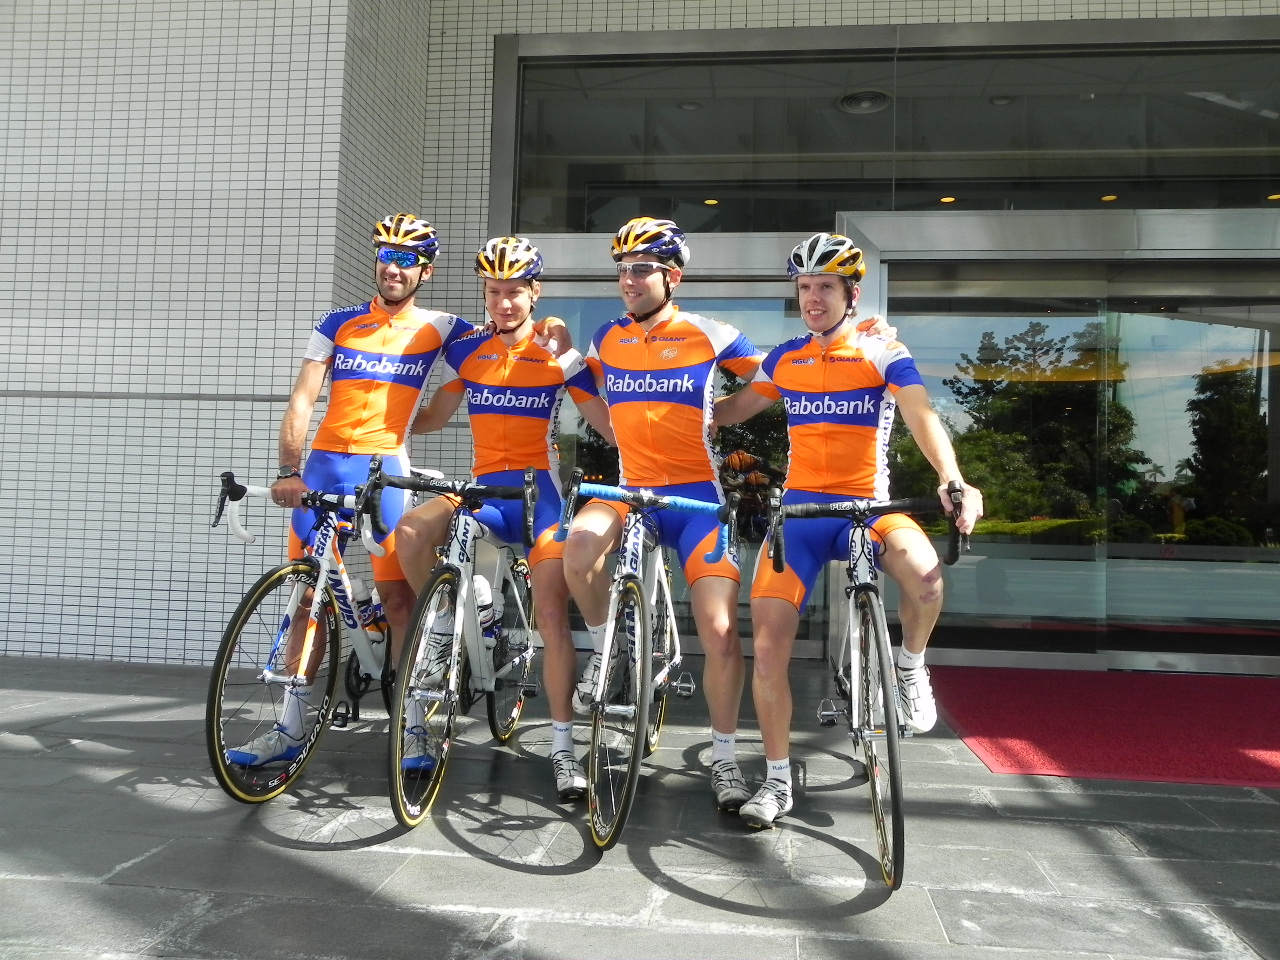 The Rabobank boys were looking sharp for photos. Carlos Barredo (far left)  is now under UCI investigation for an irregular biological passport. G luck  dude. e7c48a19a